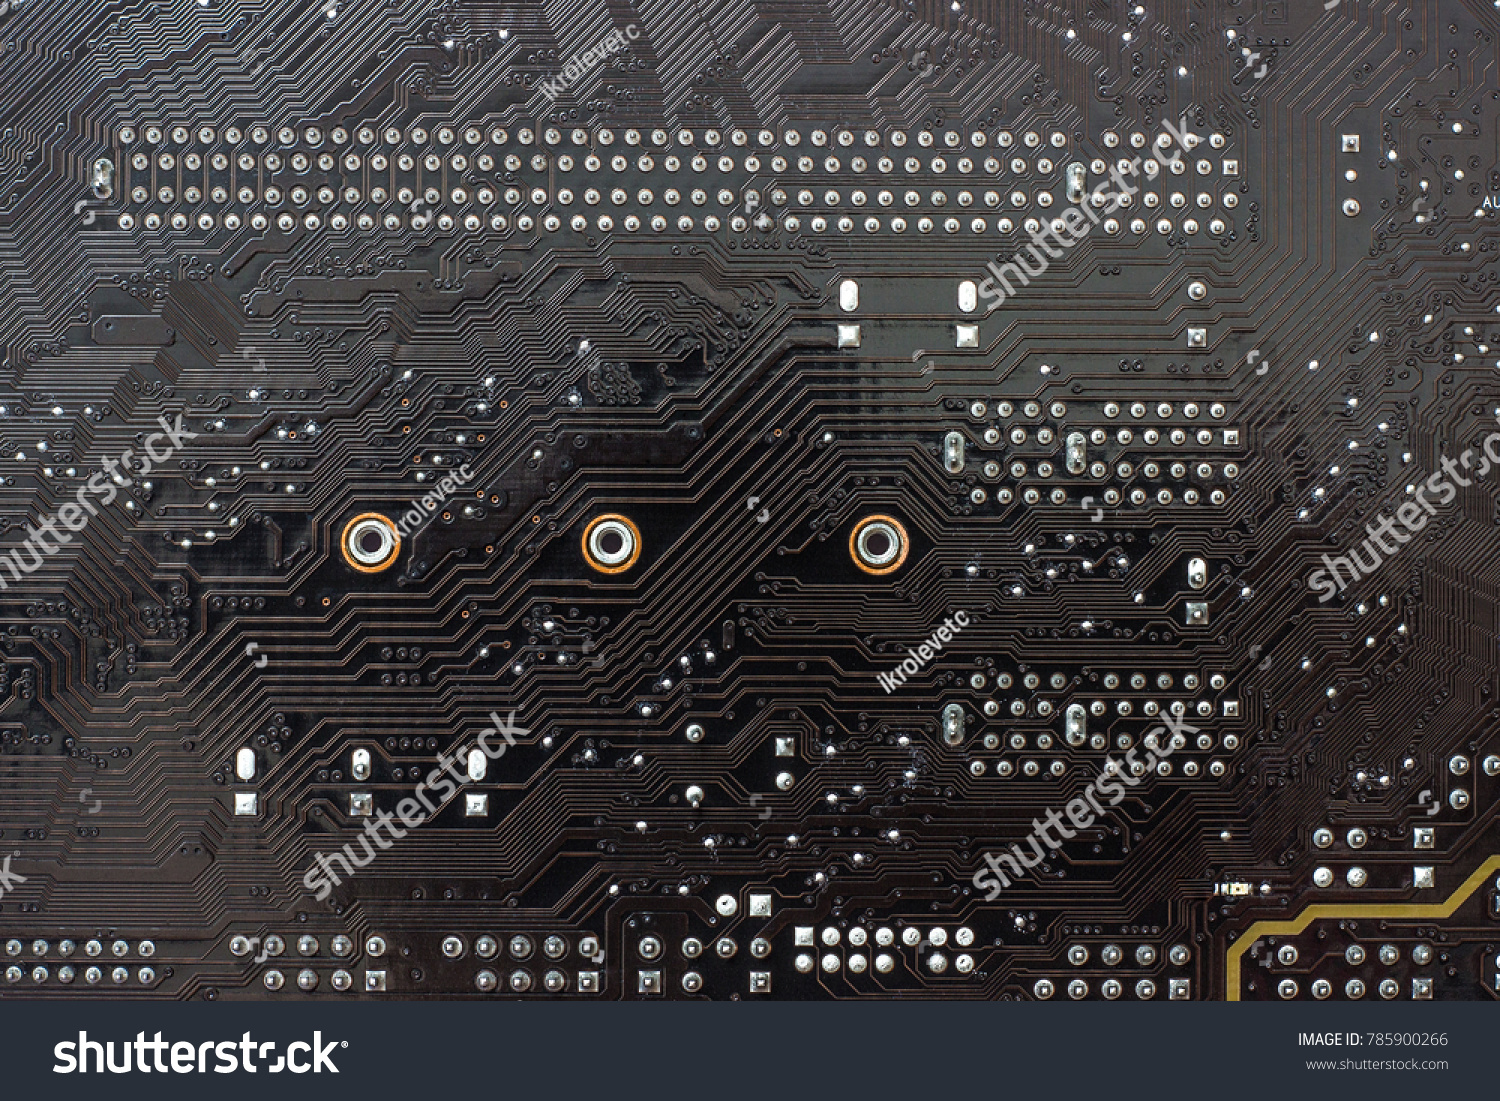 Fragment Chips Motherboard Mainboard Background Printed Stock Photo The Main Circuit Board Of A Computer Is Or As Basis